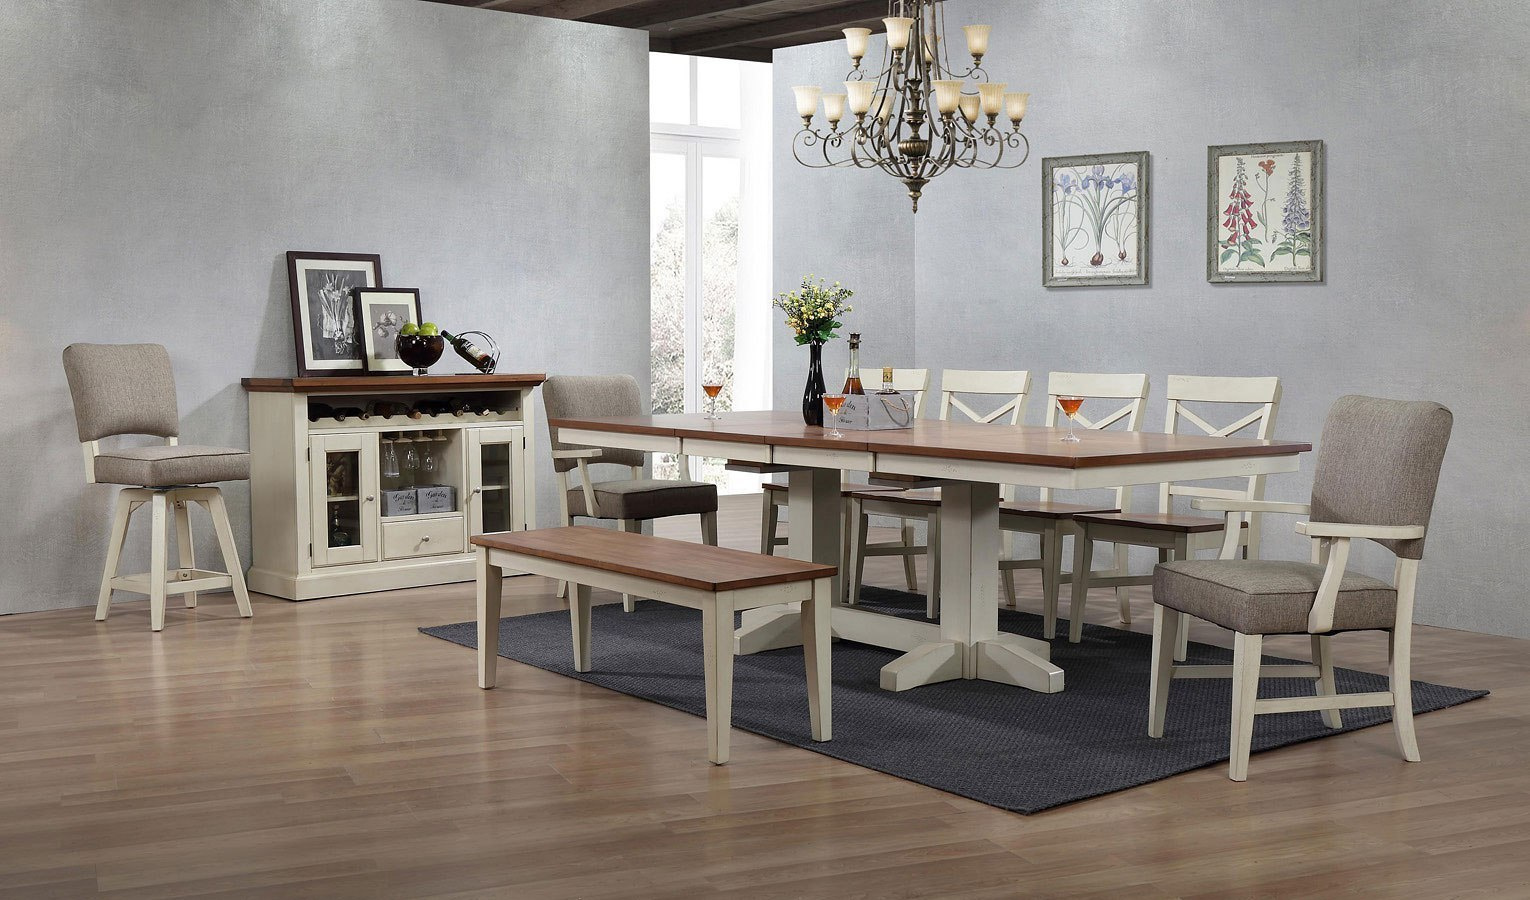 Antique White Trestle Dining Room Set by ECI Furniture